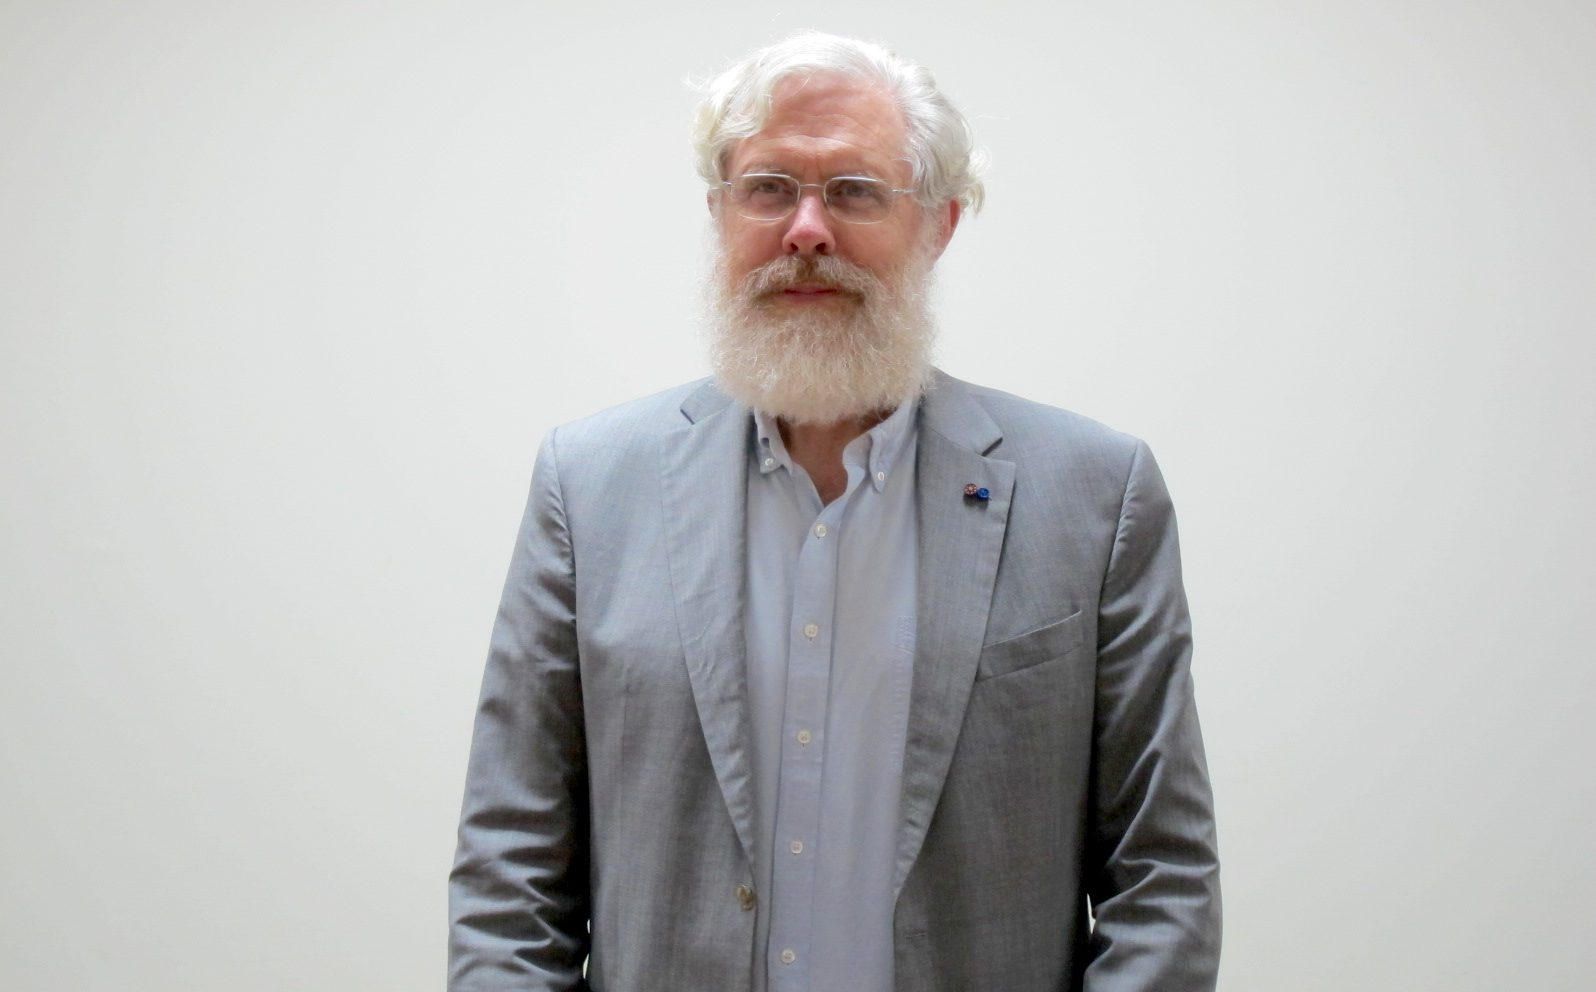 Peeking into the Future of Synthetic Biology and Gene Editing, an Exclusive Interview with Dr. George Church